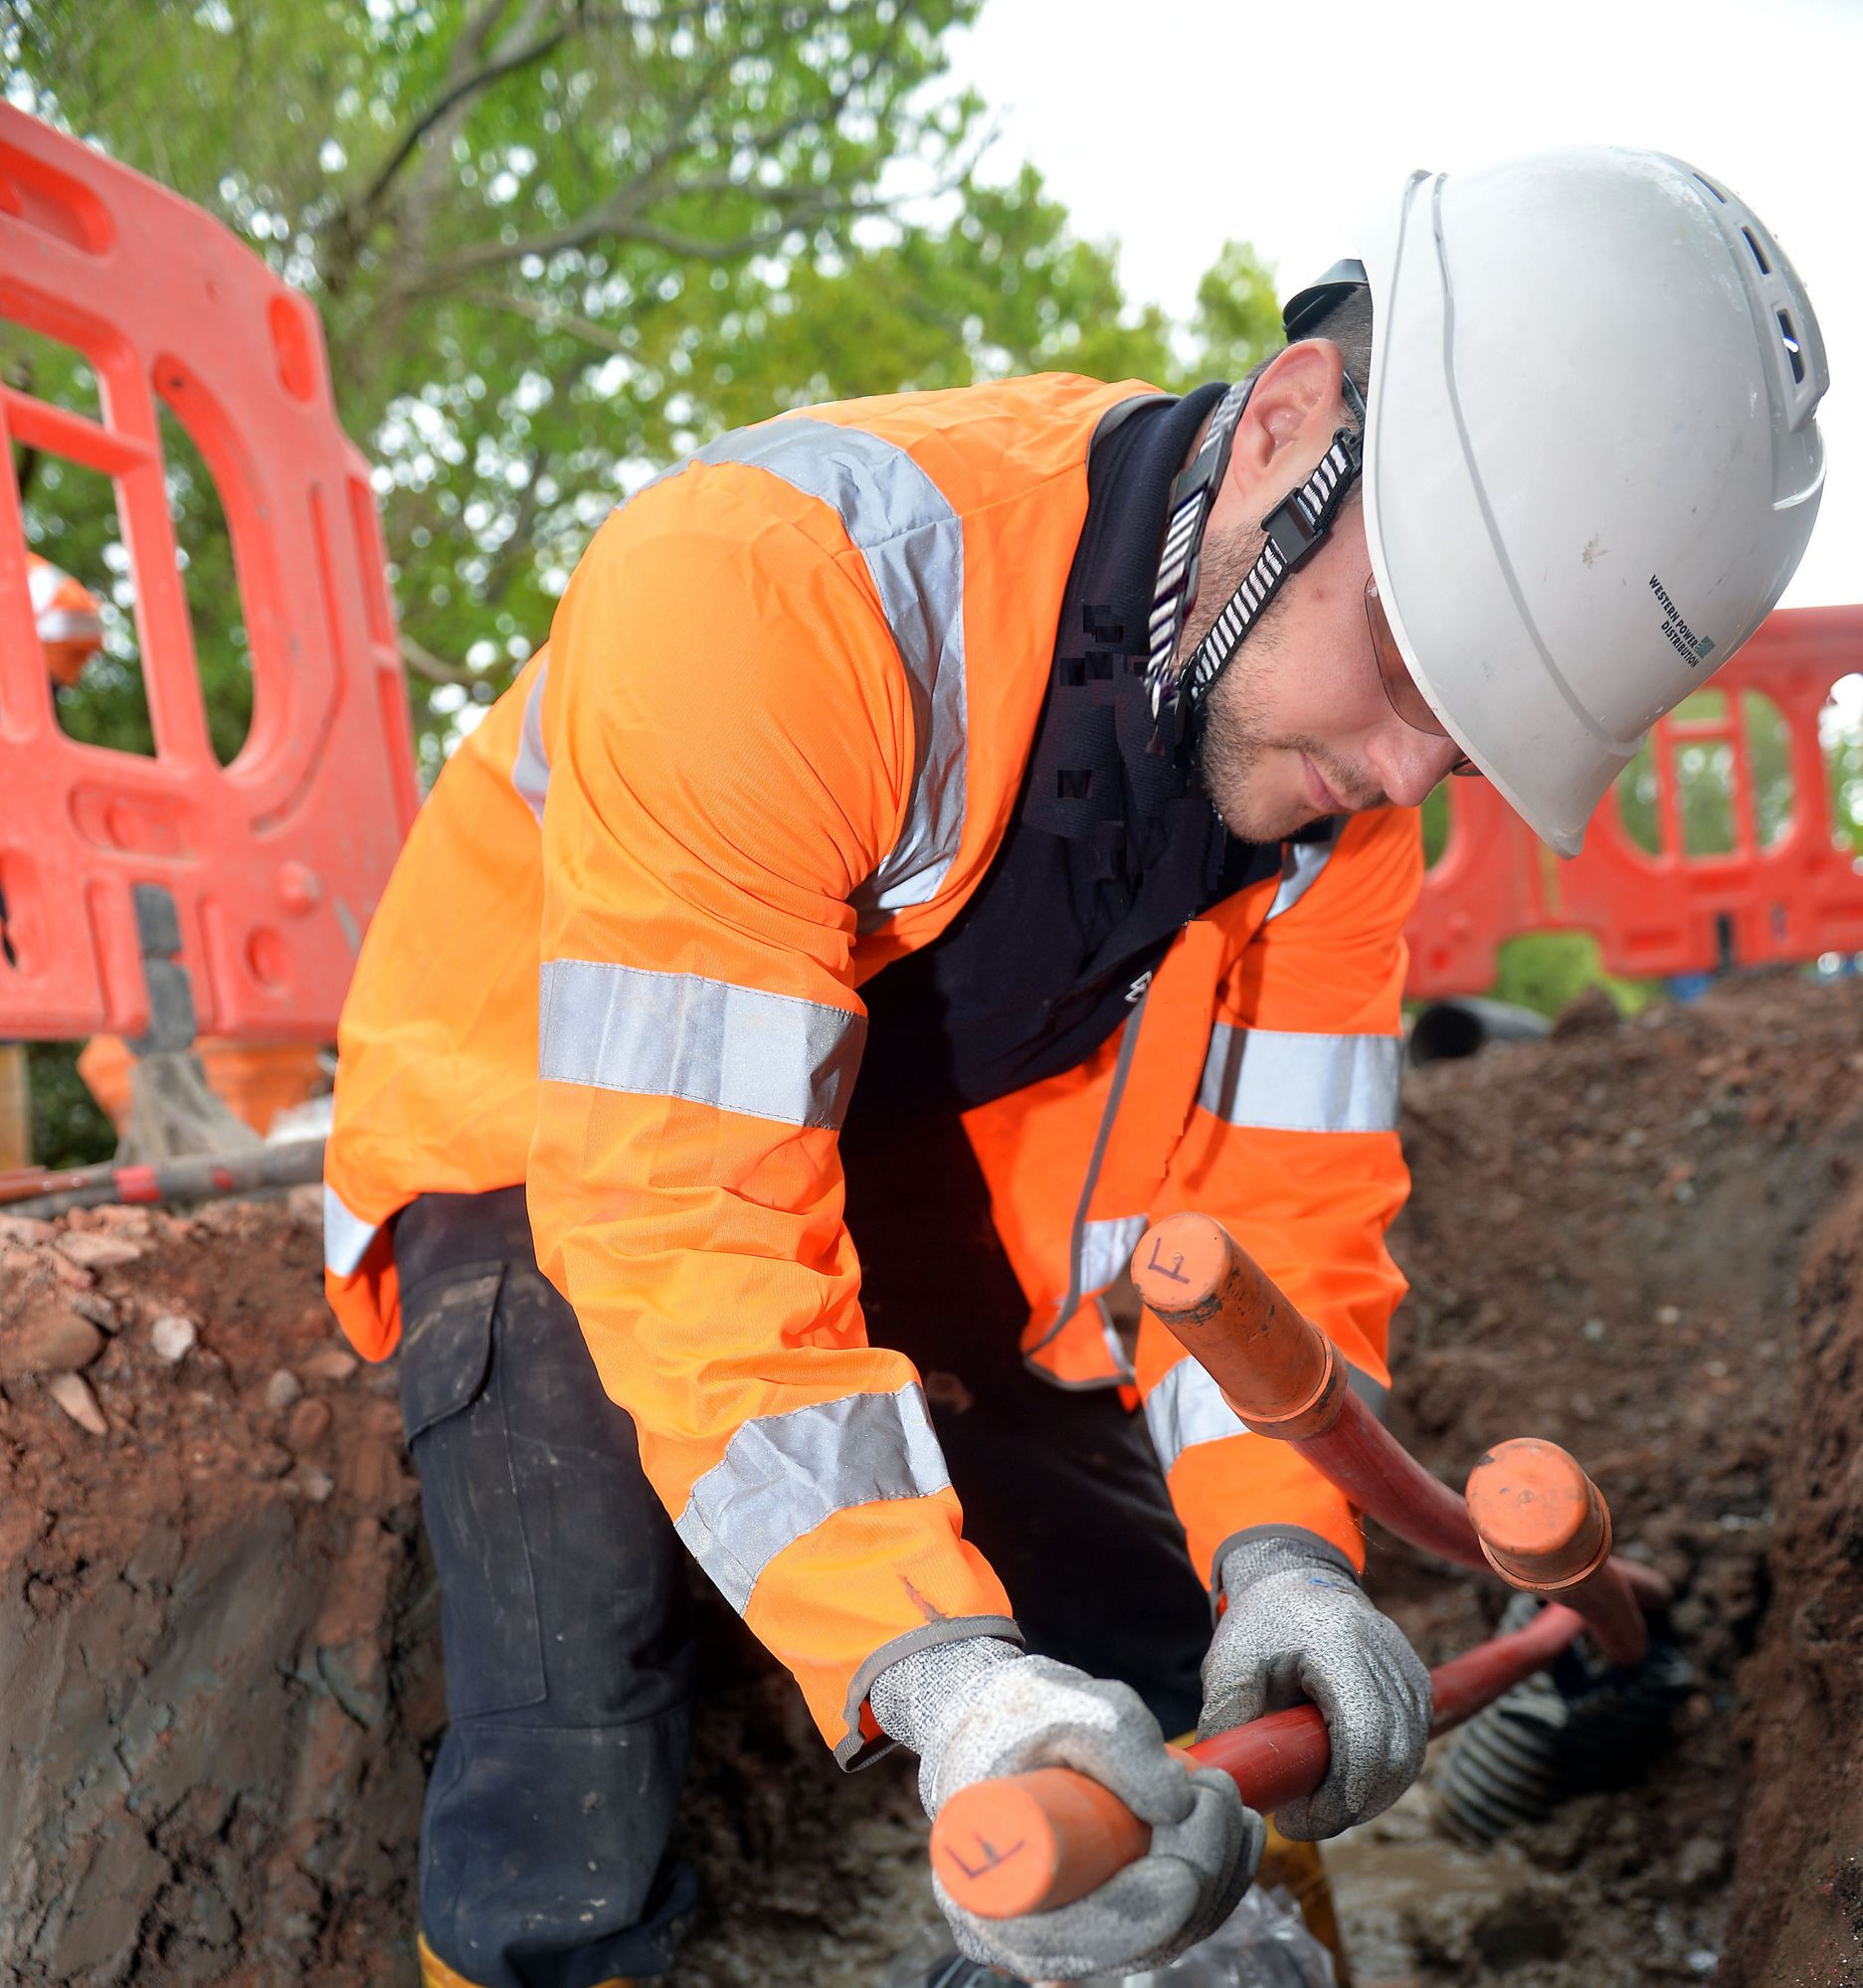 Western Power technician working on underground cables